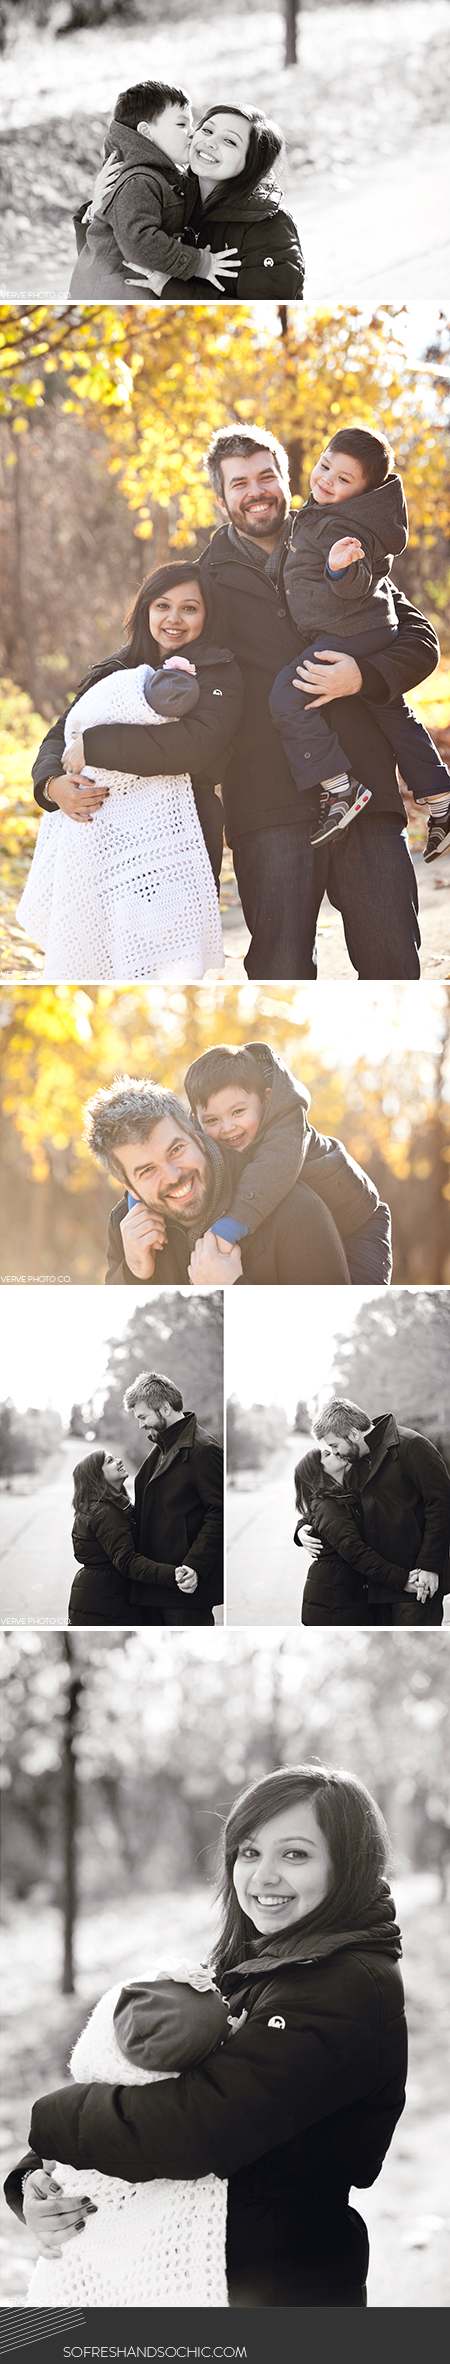 So Fresh and So Chic // Family Photos to Remember by Verve Photo Co.